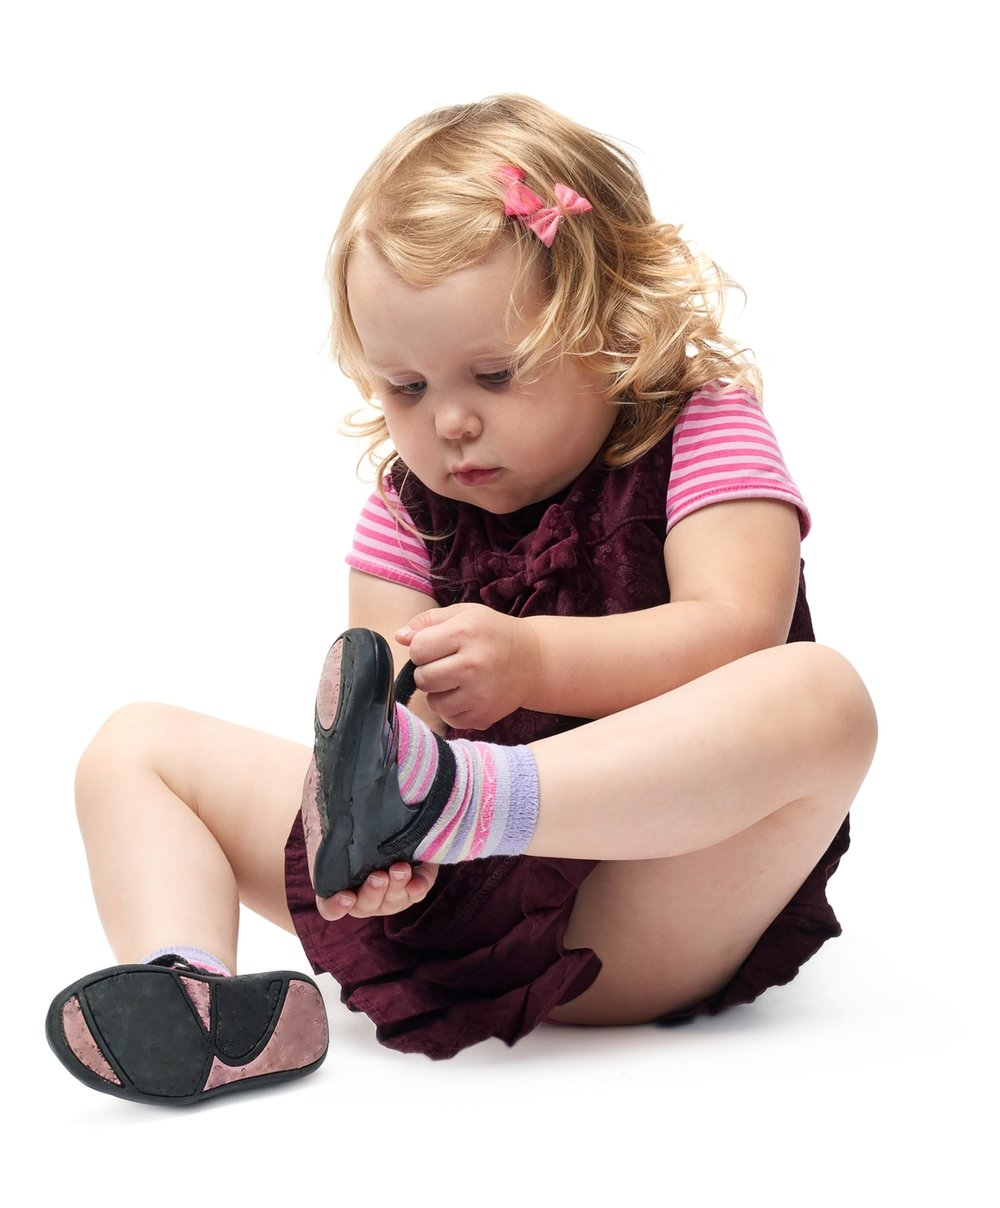 girlp putting on shoe.jpg